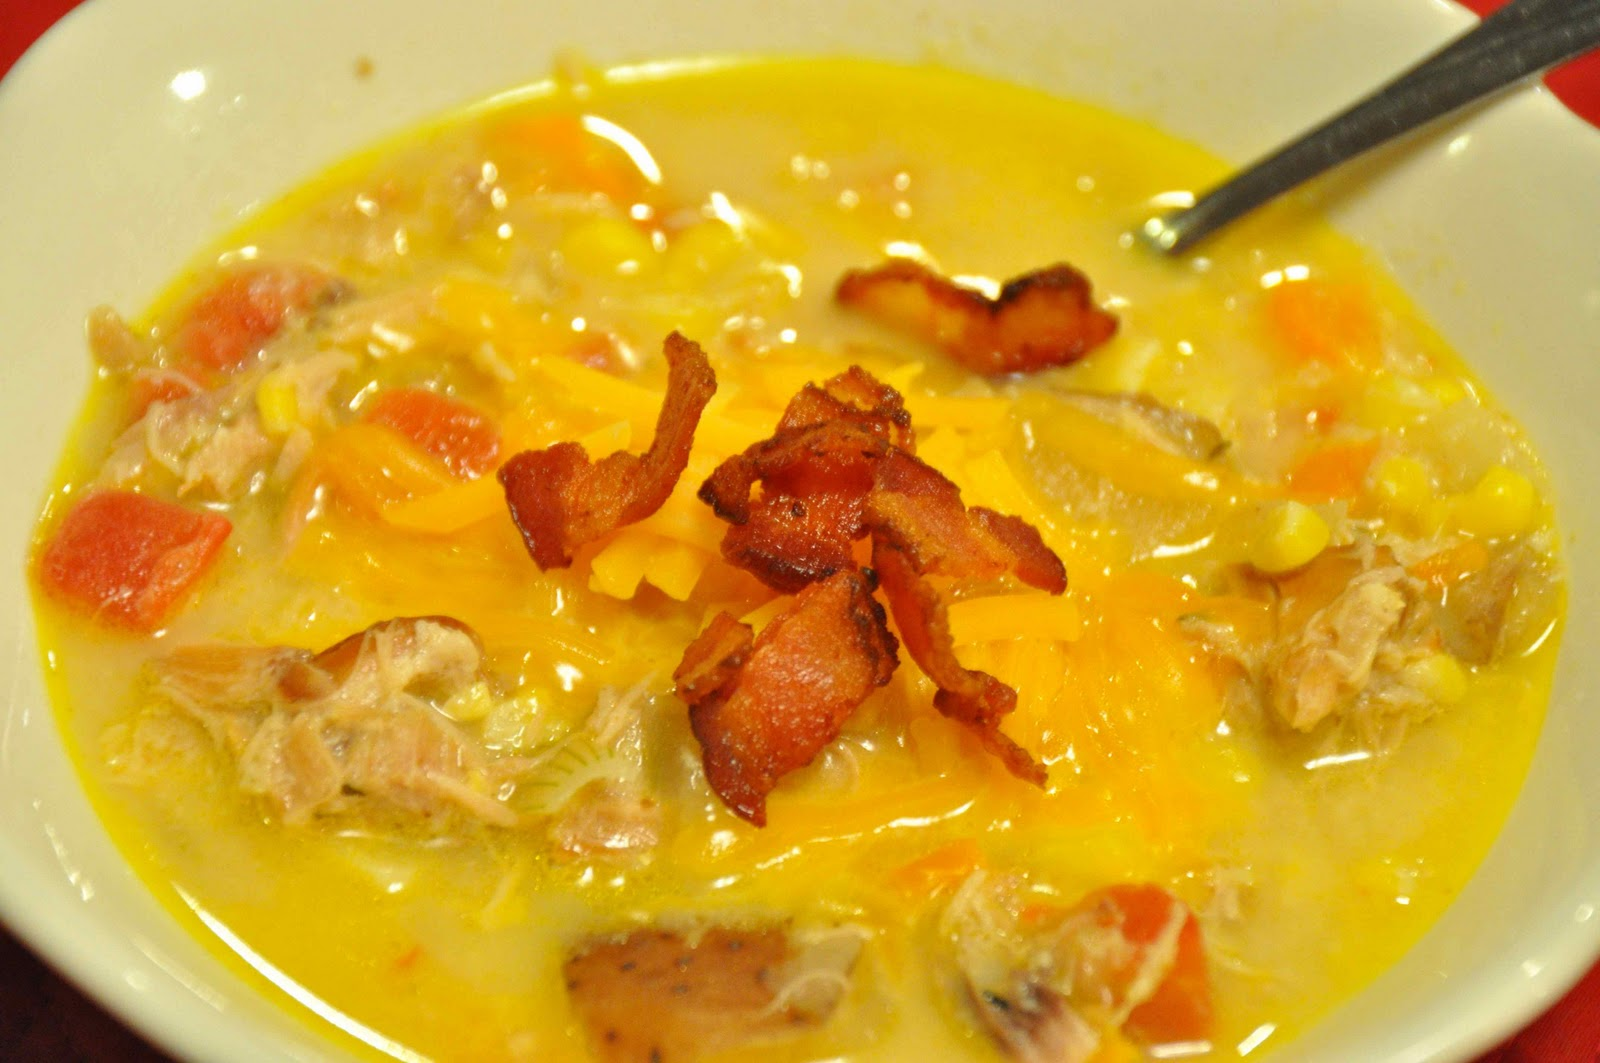 Chicken-Corn Chowder